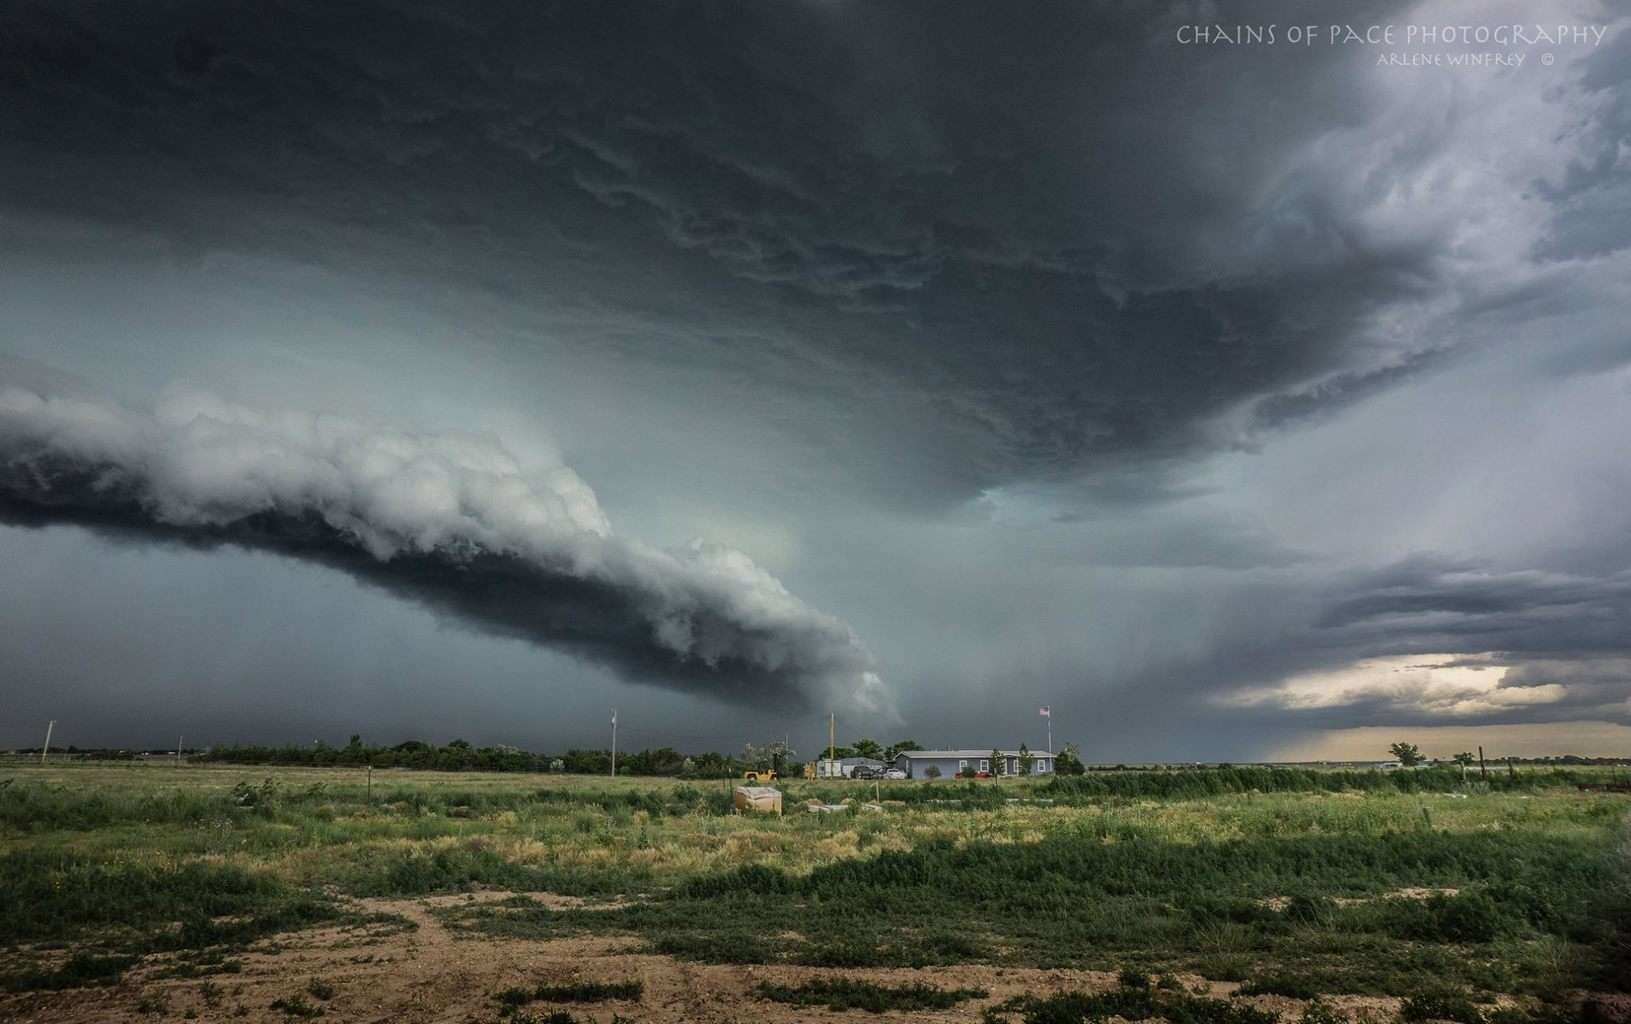 Massive storm in the Oklahoma panhandle near Guymon, taken 6-8-2015